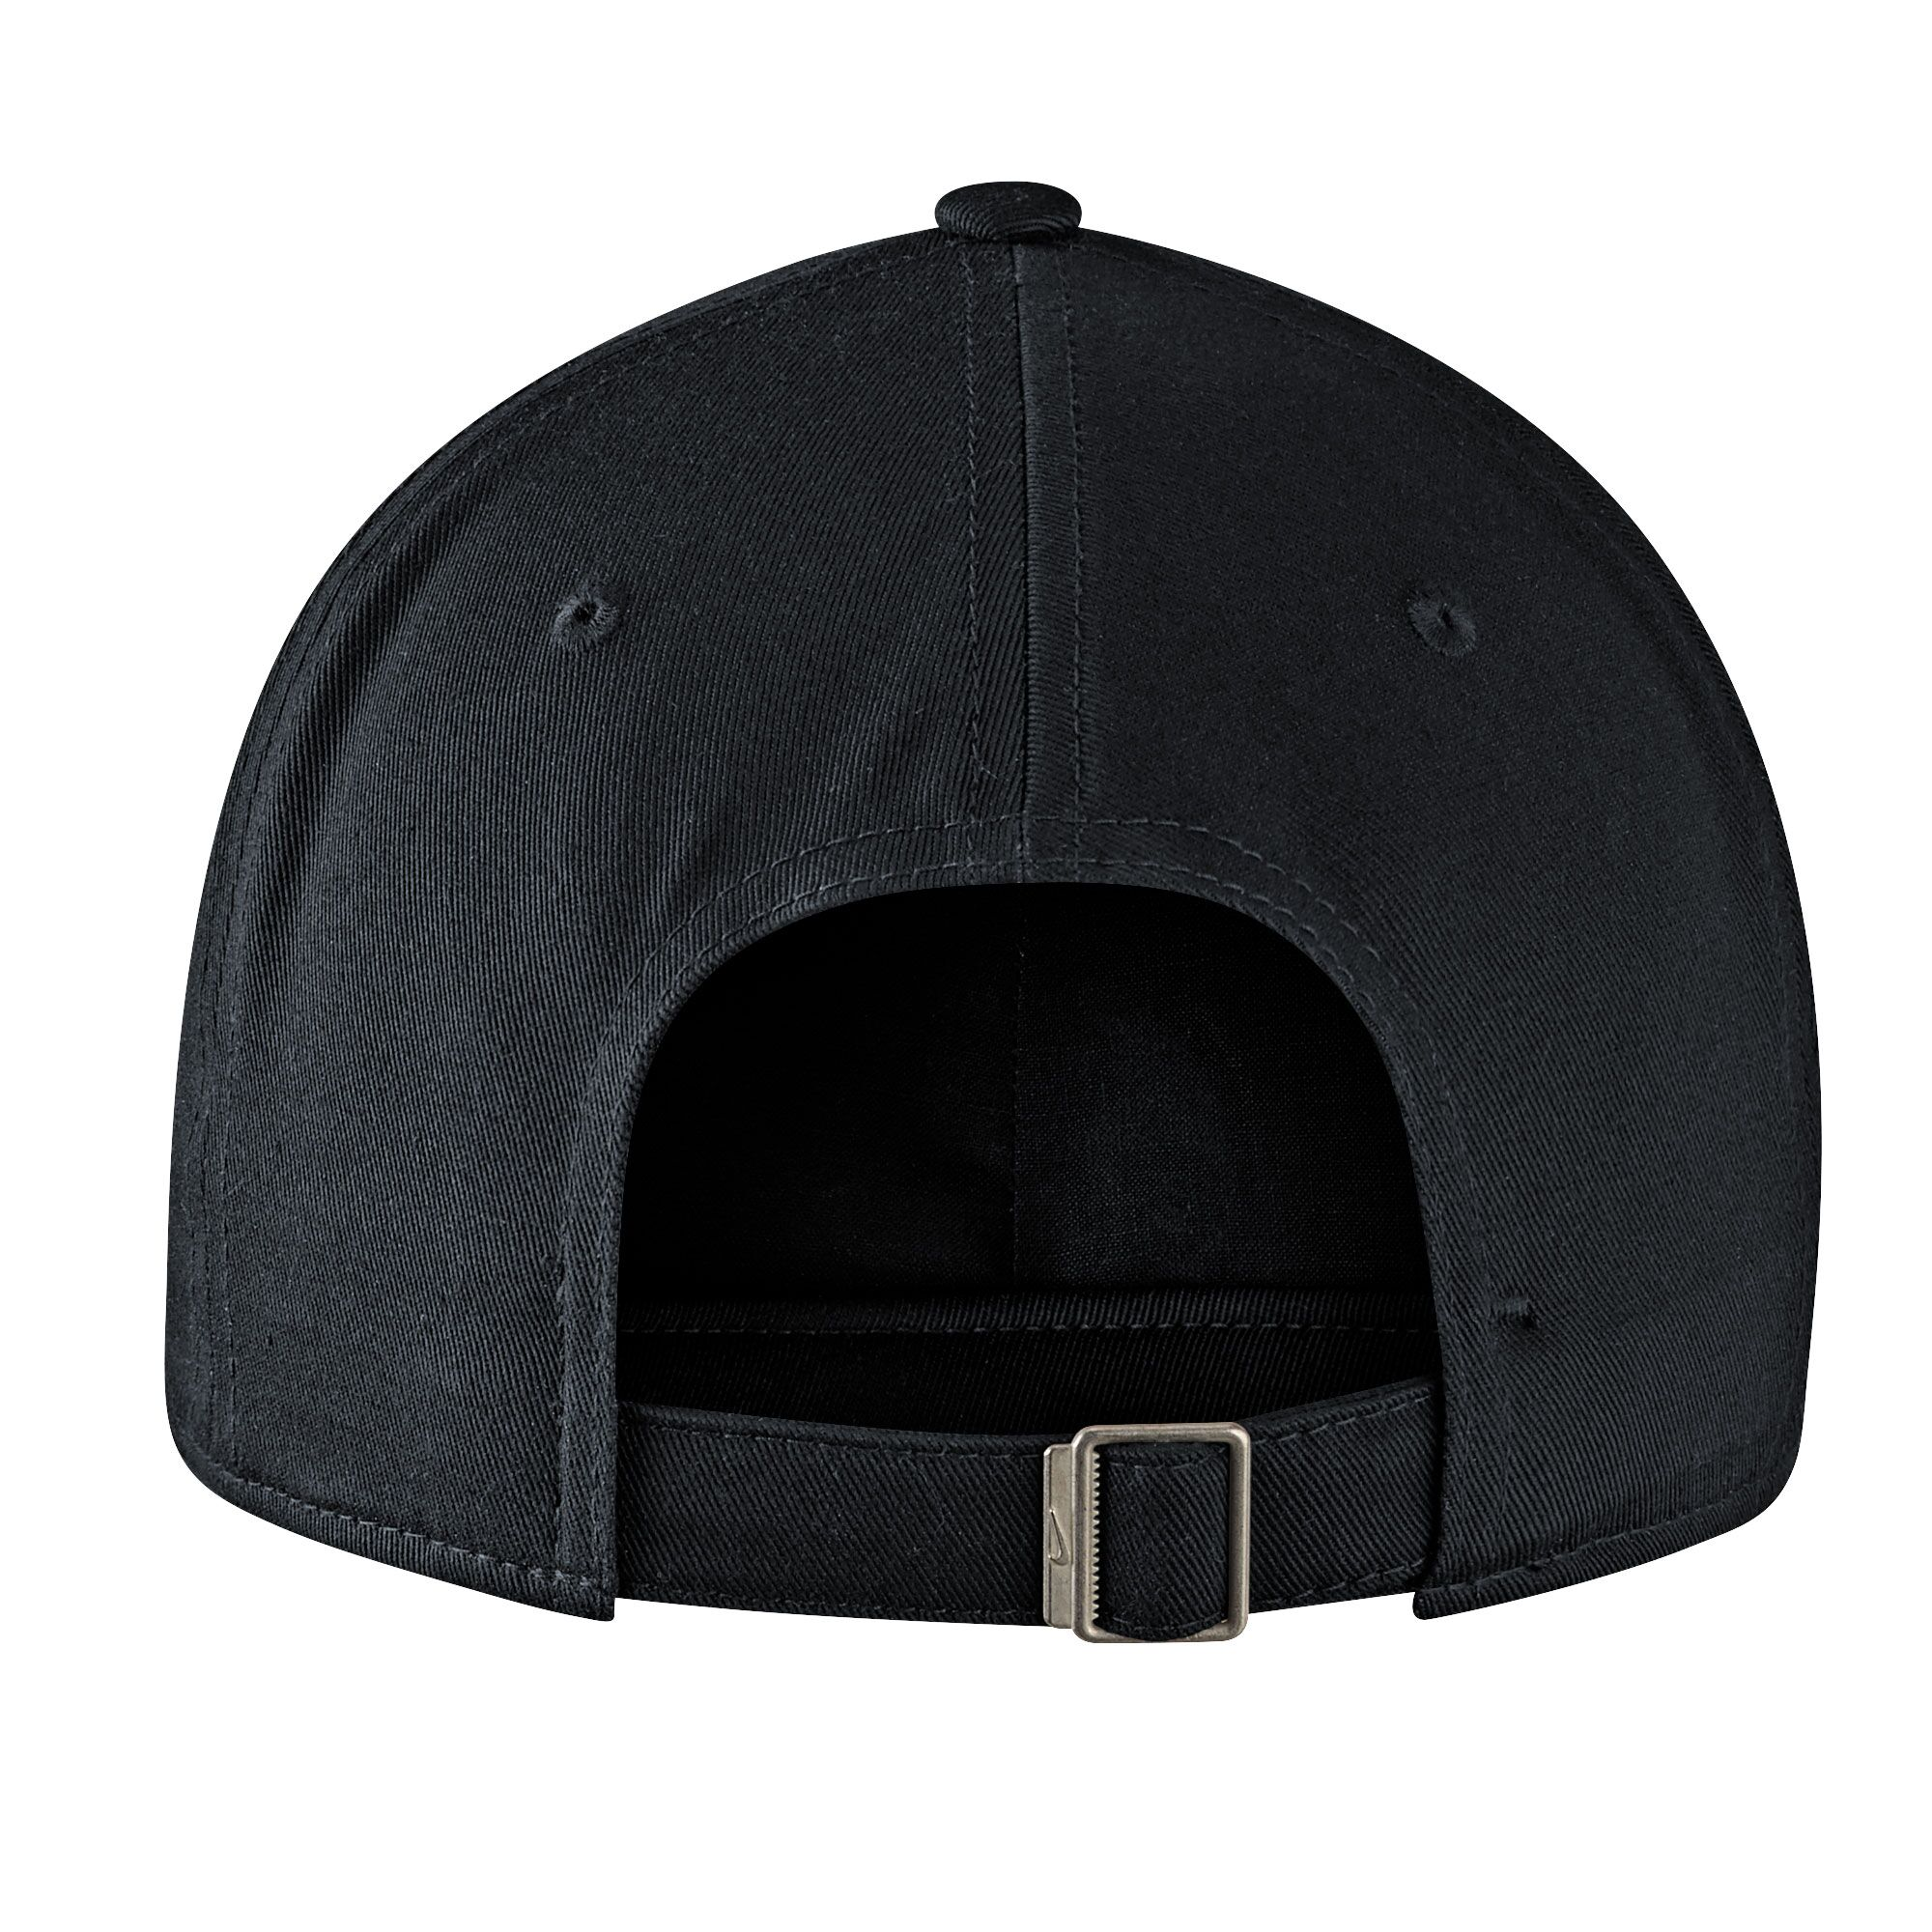 Image for the Nike Campus Cap product